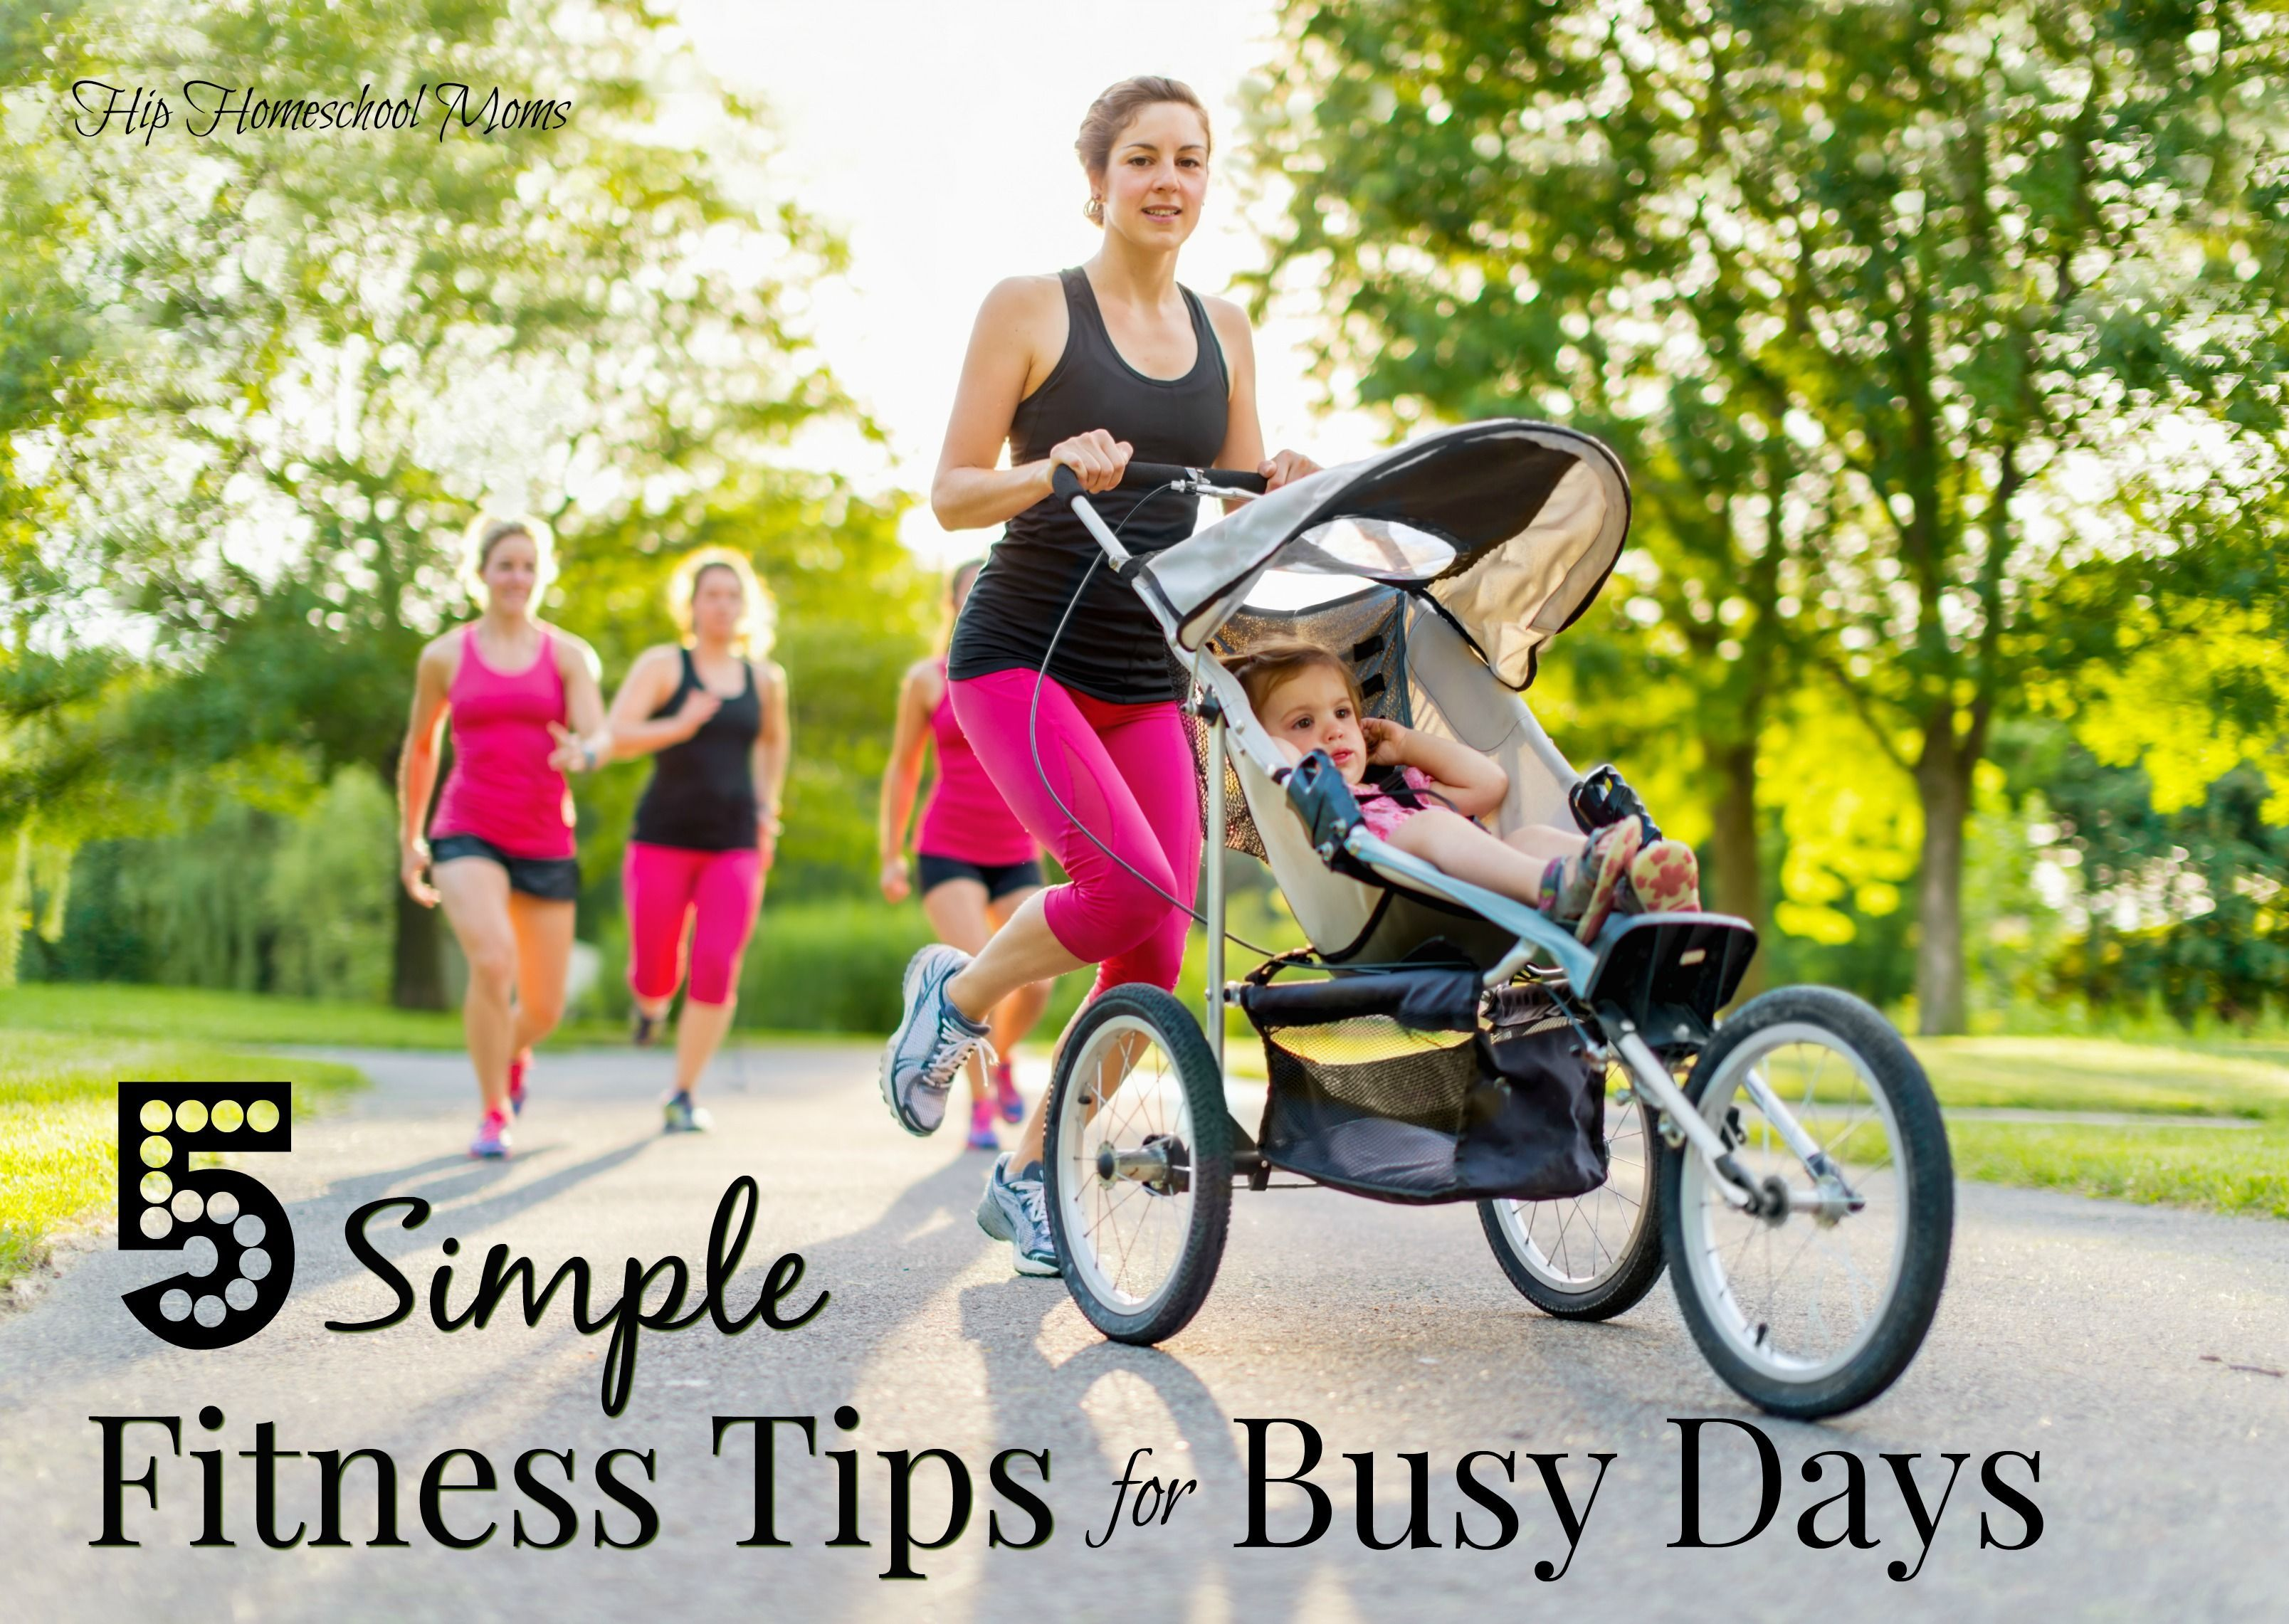 5 Simple Fitness Tips for Busy Days Baby strollers